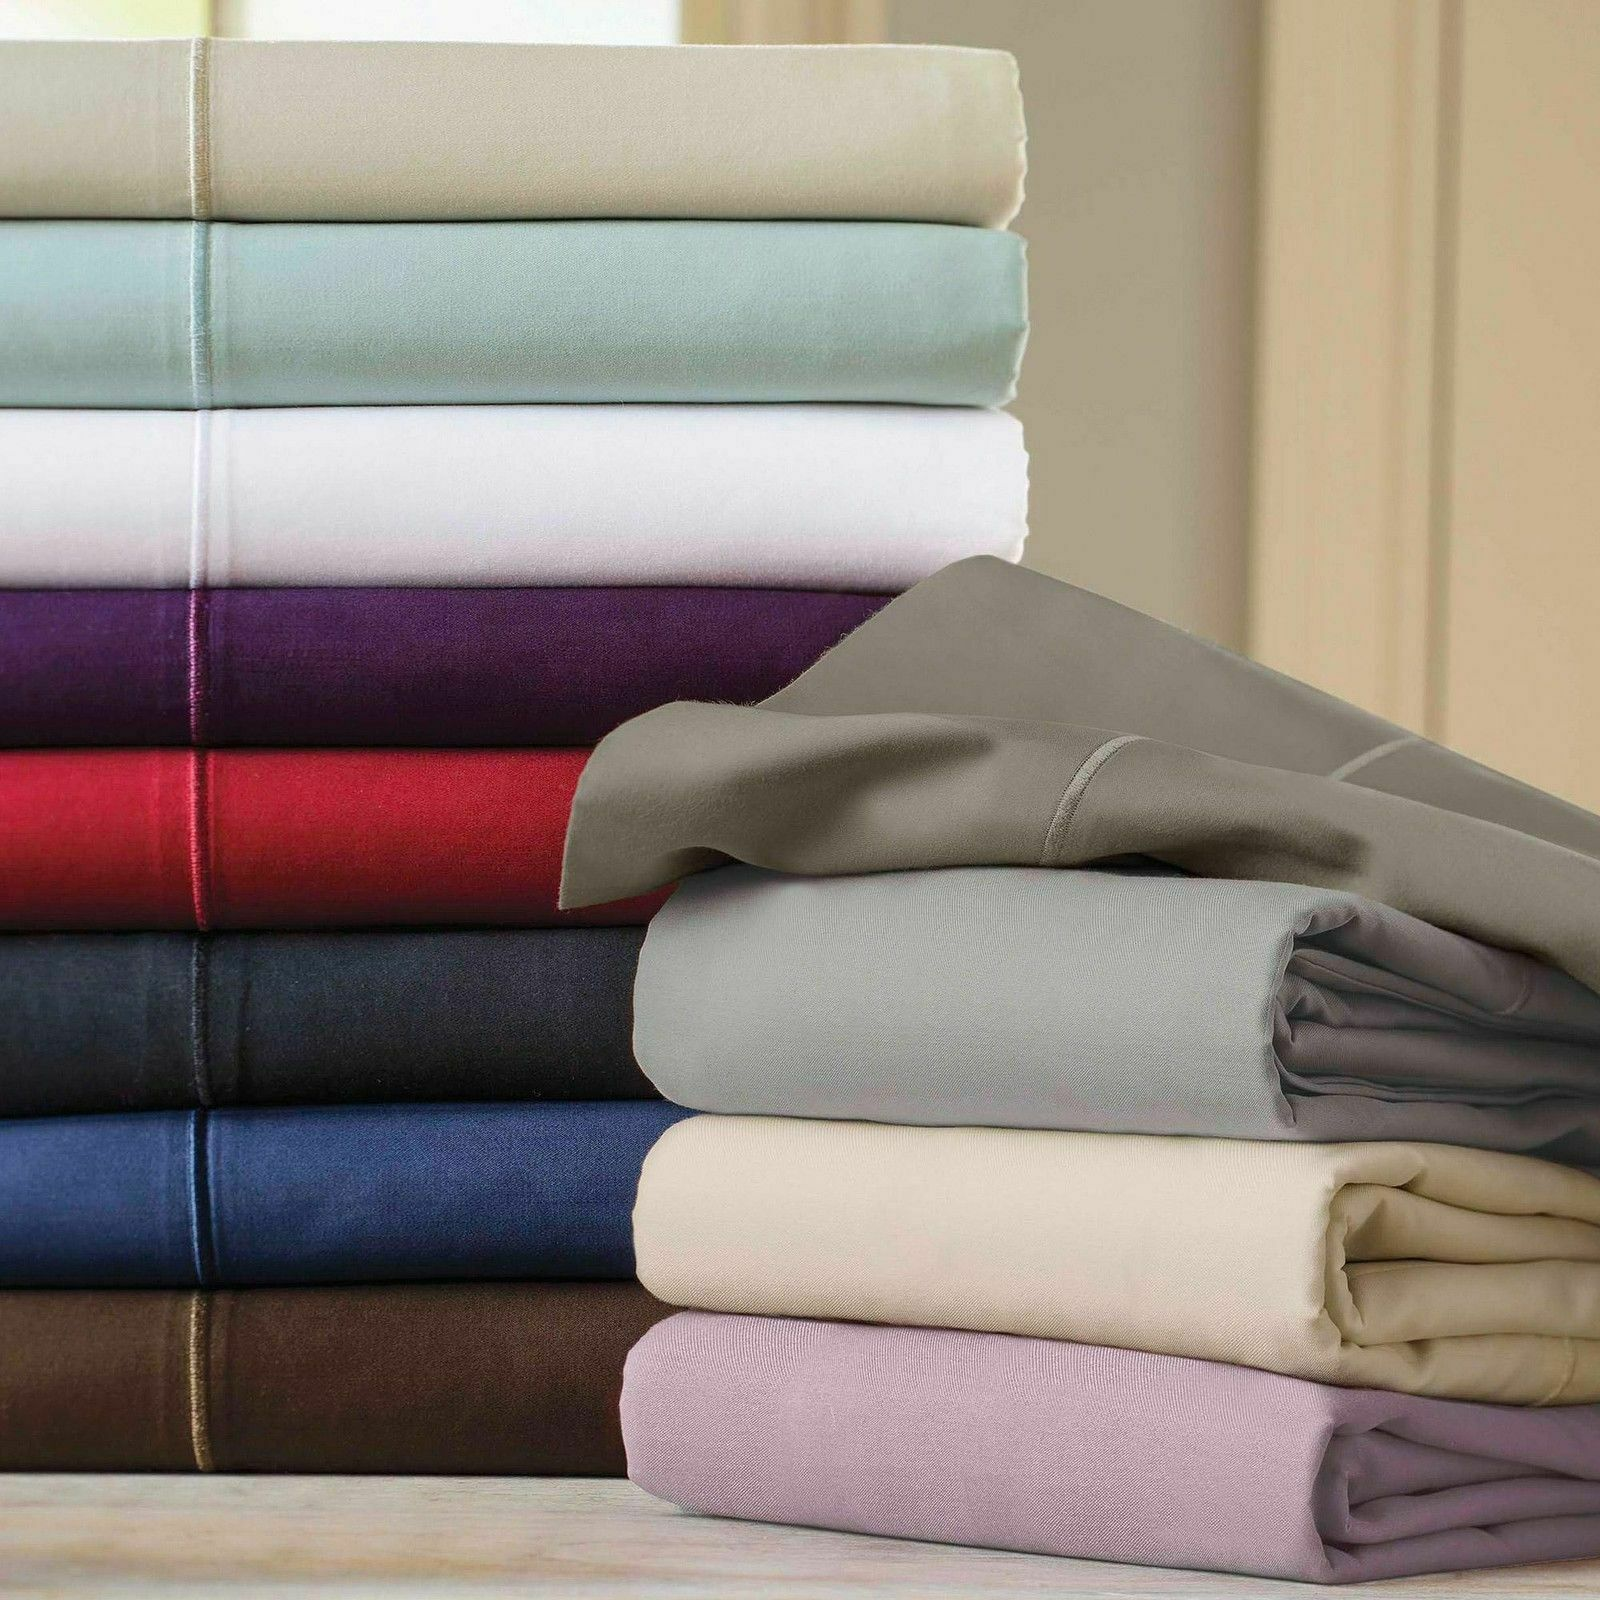 Bedding Collection 1000 TC Egyptian Cotton Select Solid colors US Twin XL